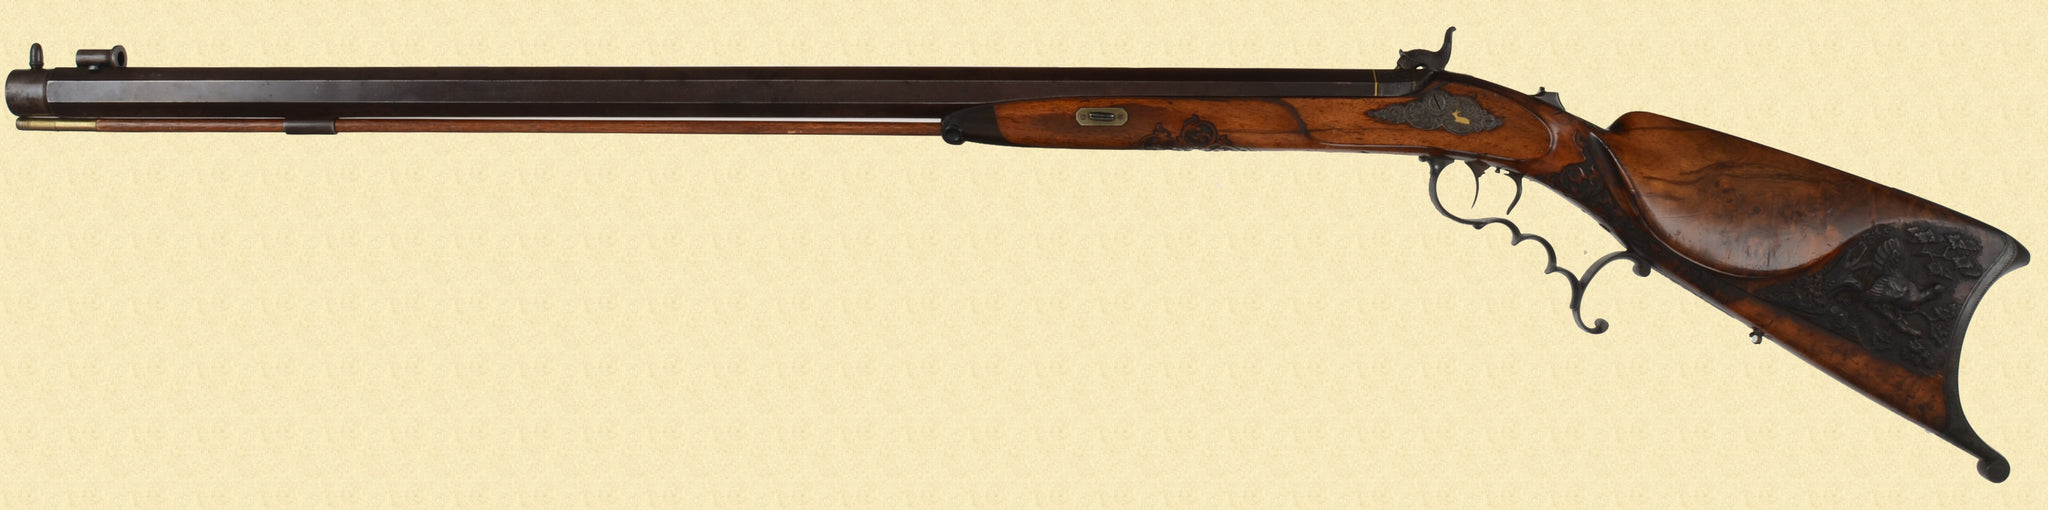 A SCHNEIDER PERCUSSION TARGET RIFLE